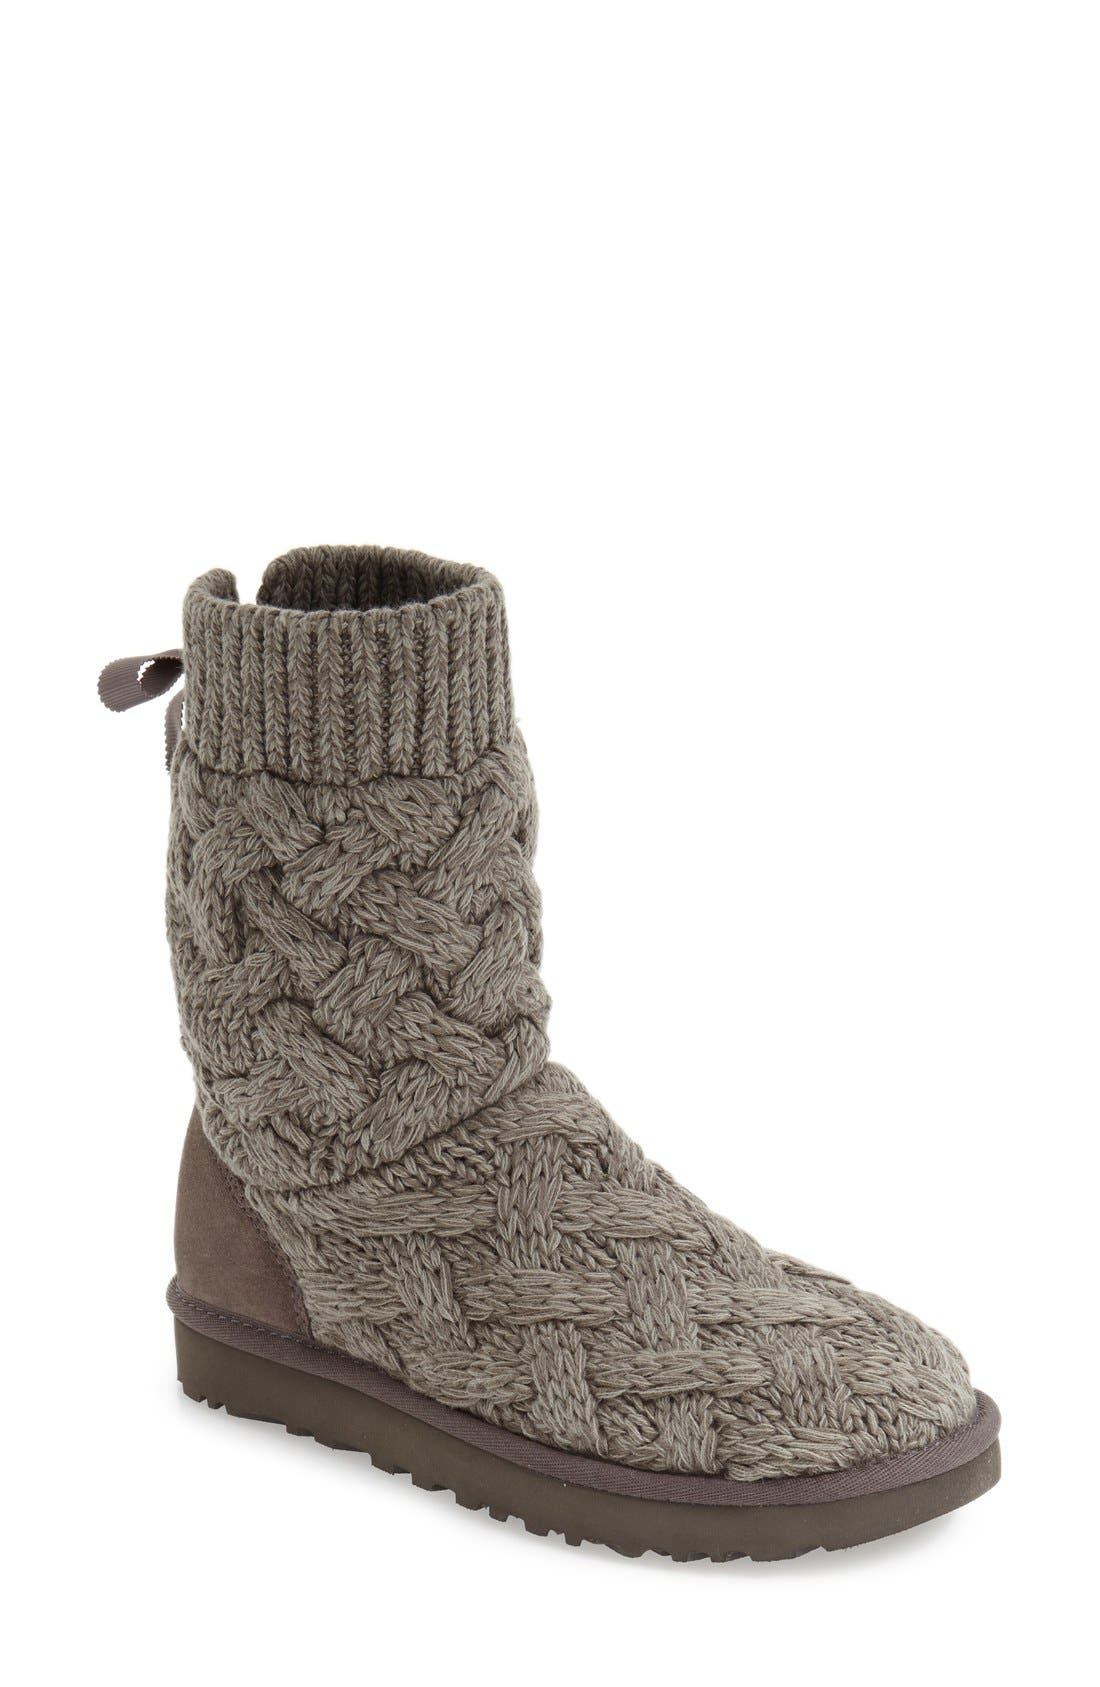 Alternate Image 1 Selected - UGG® Isla Boot (Women)